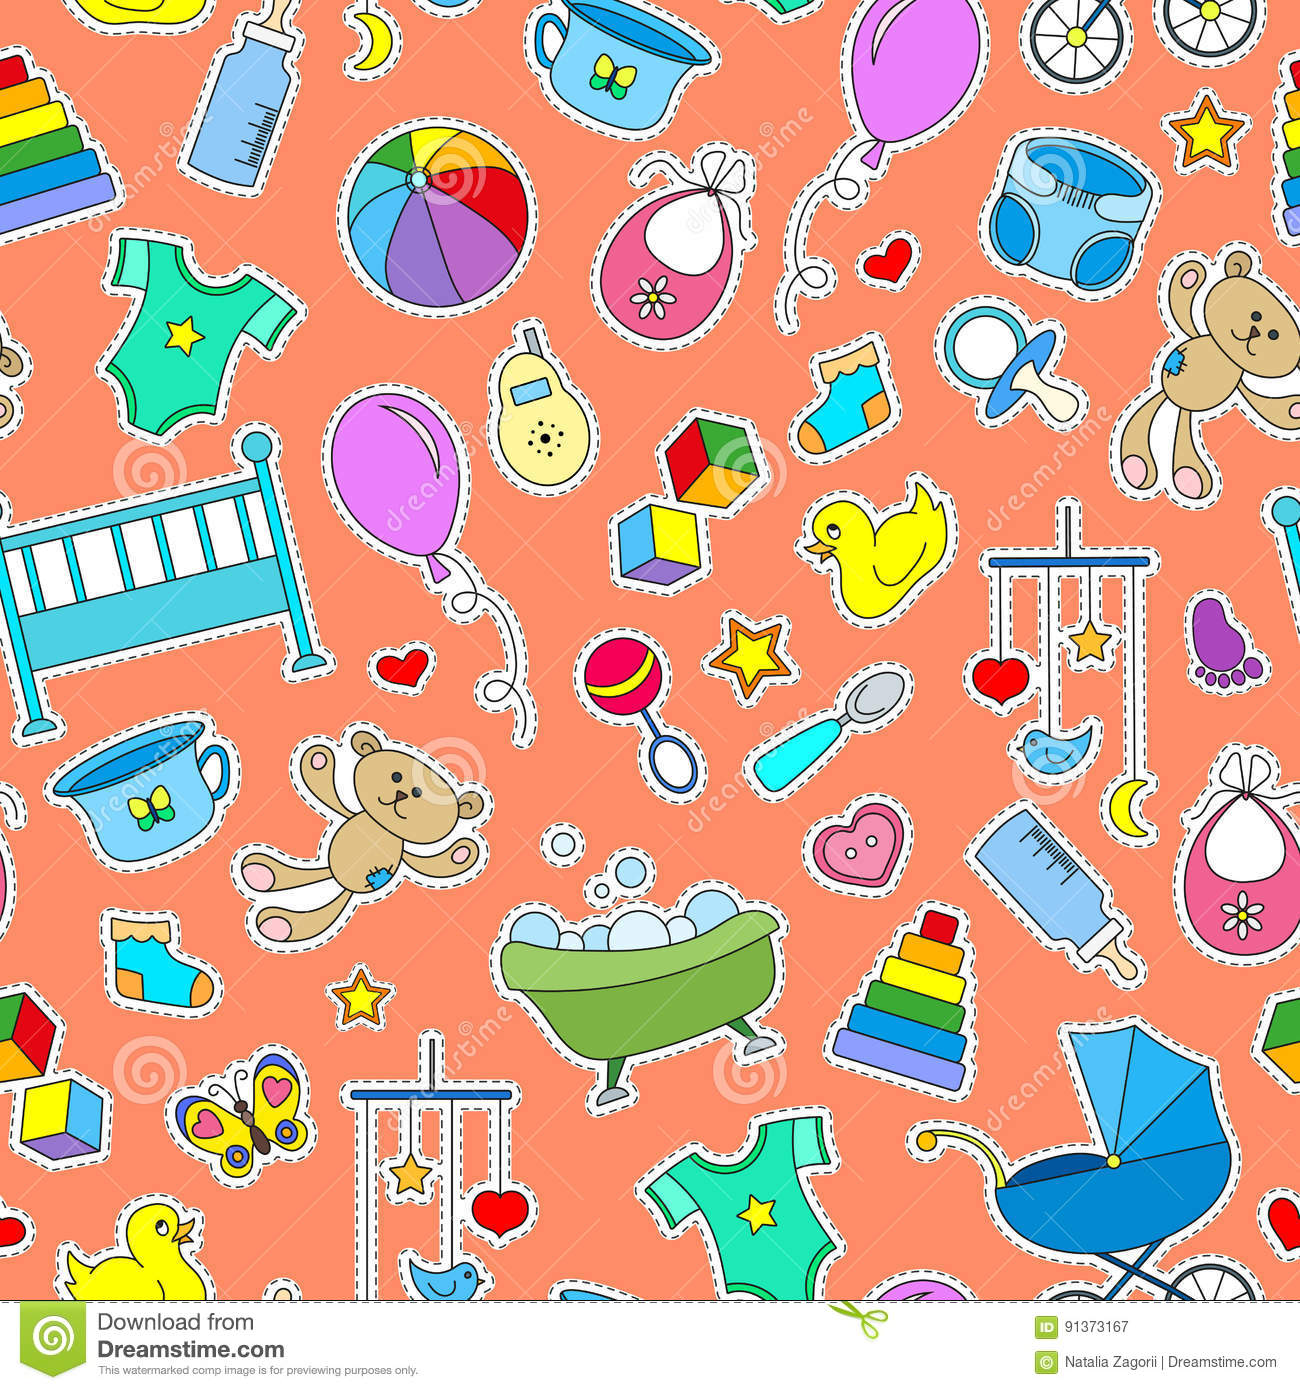 Seamless illustration on the theme of childhood and newborn babies, baby accessories and toys, simple color patches icons on oran